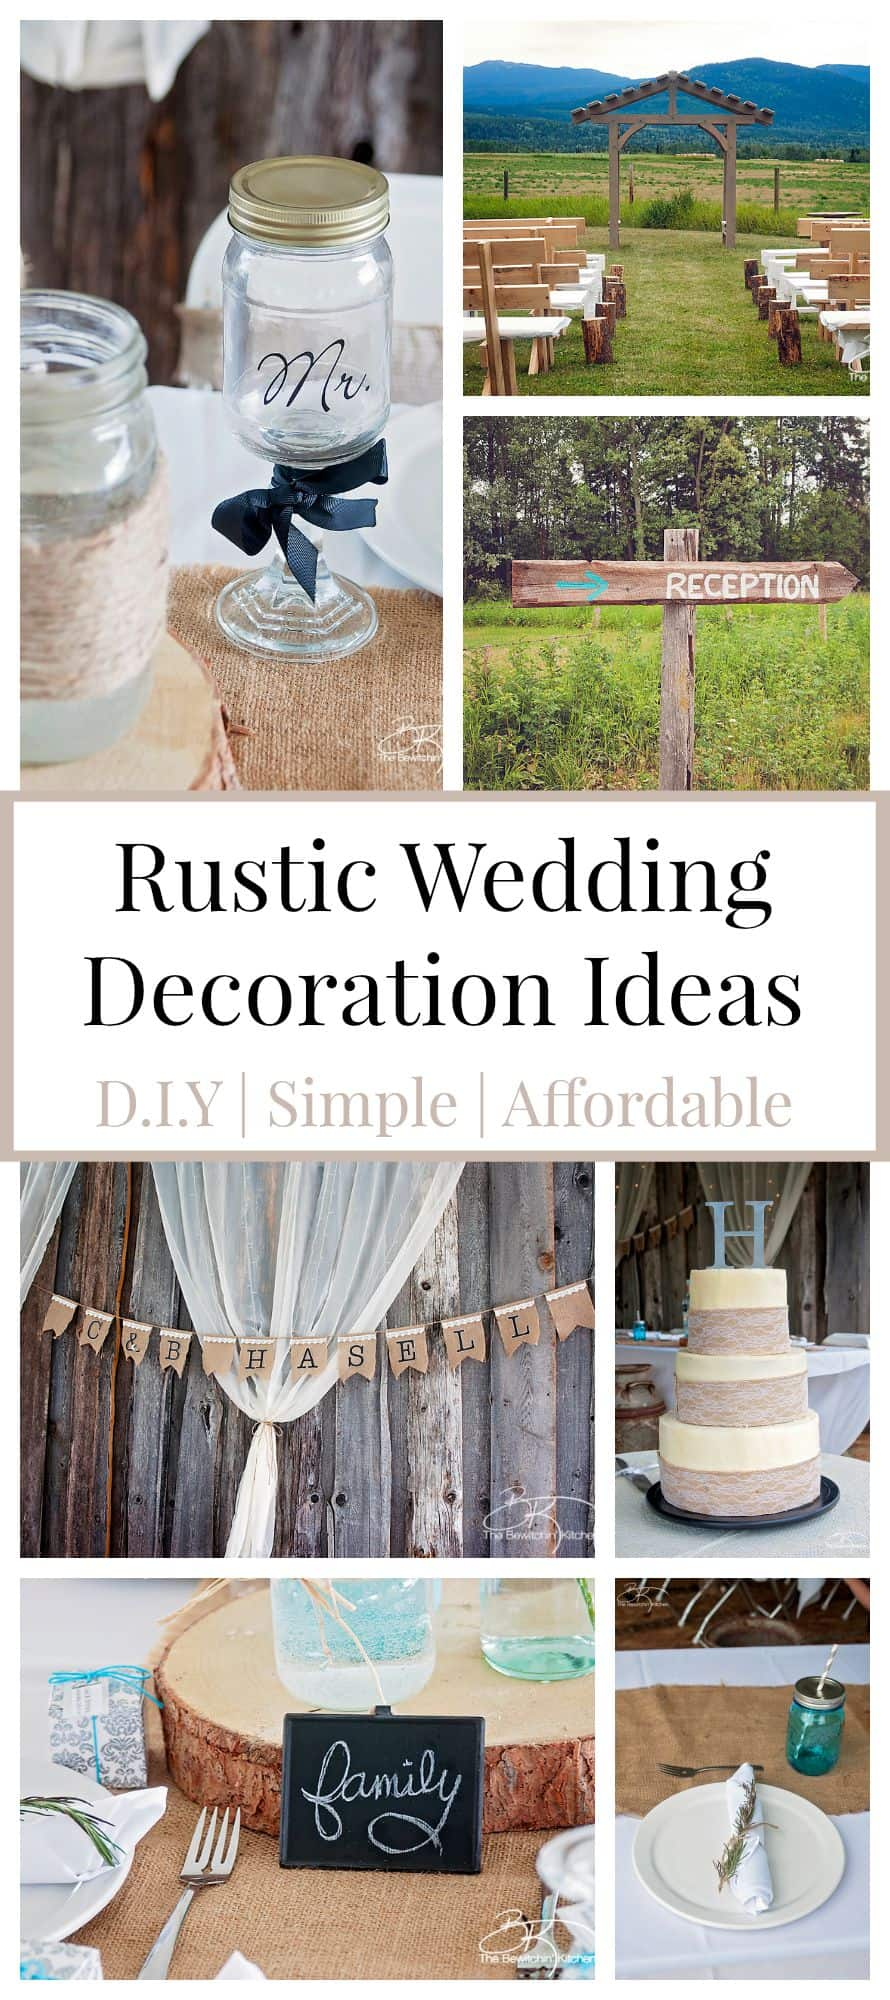 Rustic wedding ideas that are diy affordable the bewitchin kitchen rustic wedding ideas these diy wedding decorations are amazing and look incredibly cute when put junglespirit Images